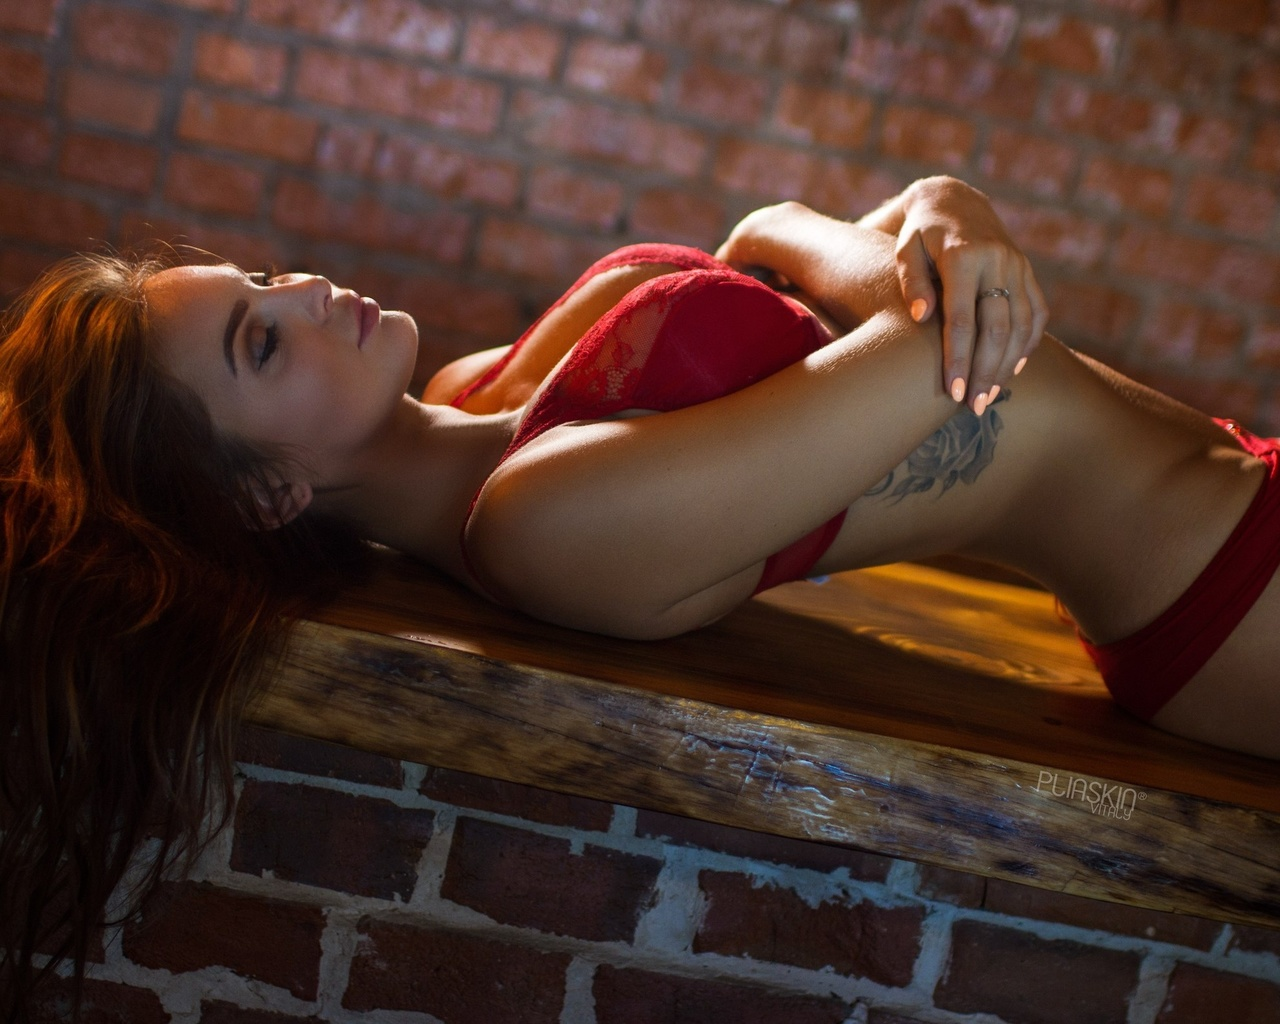 sofia kazakova, women, brunette, red lingerie, tattoo, arched back, closed eyes, bricks, portrait, painted nails, belly, arms crossed, девушка, шатенка, закрытые глаза, макияж, загорелая, фигурка, тату, нижнее белье